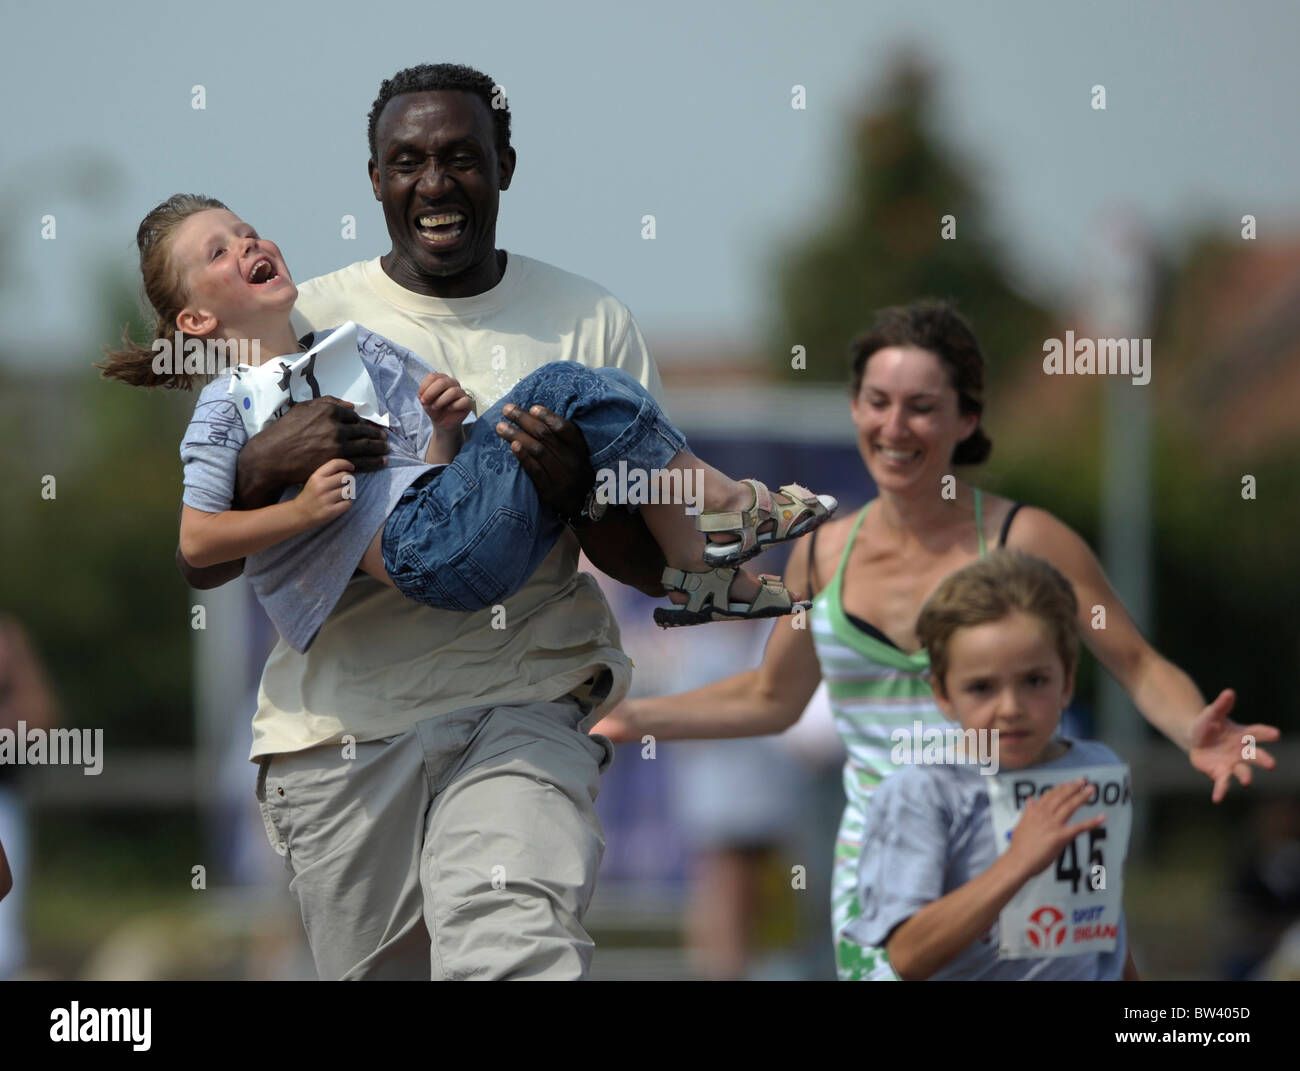 Linford Christie in action from the Reebok run at Hawkinge, 27th July 2008. - Stock Image